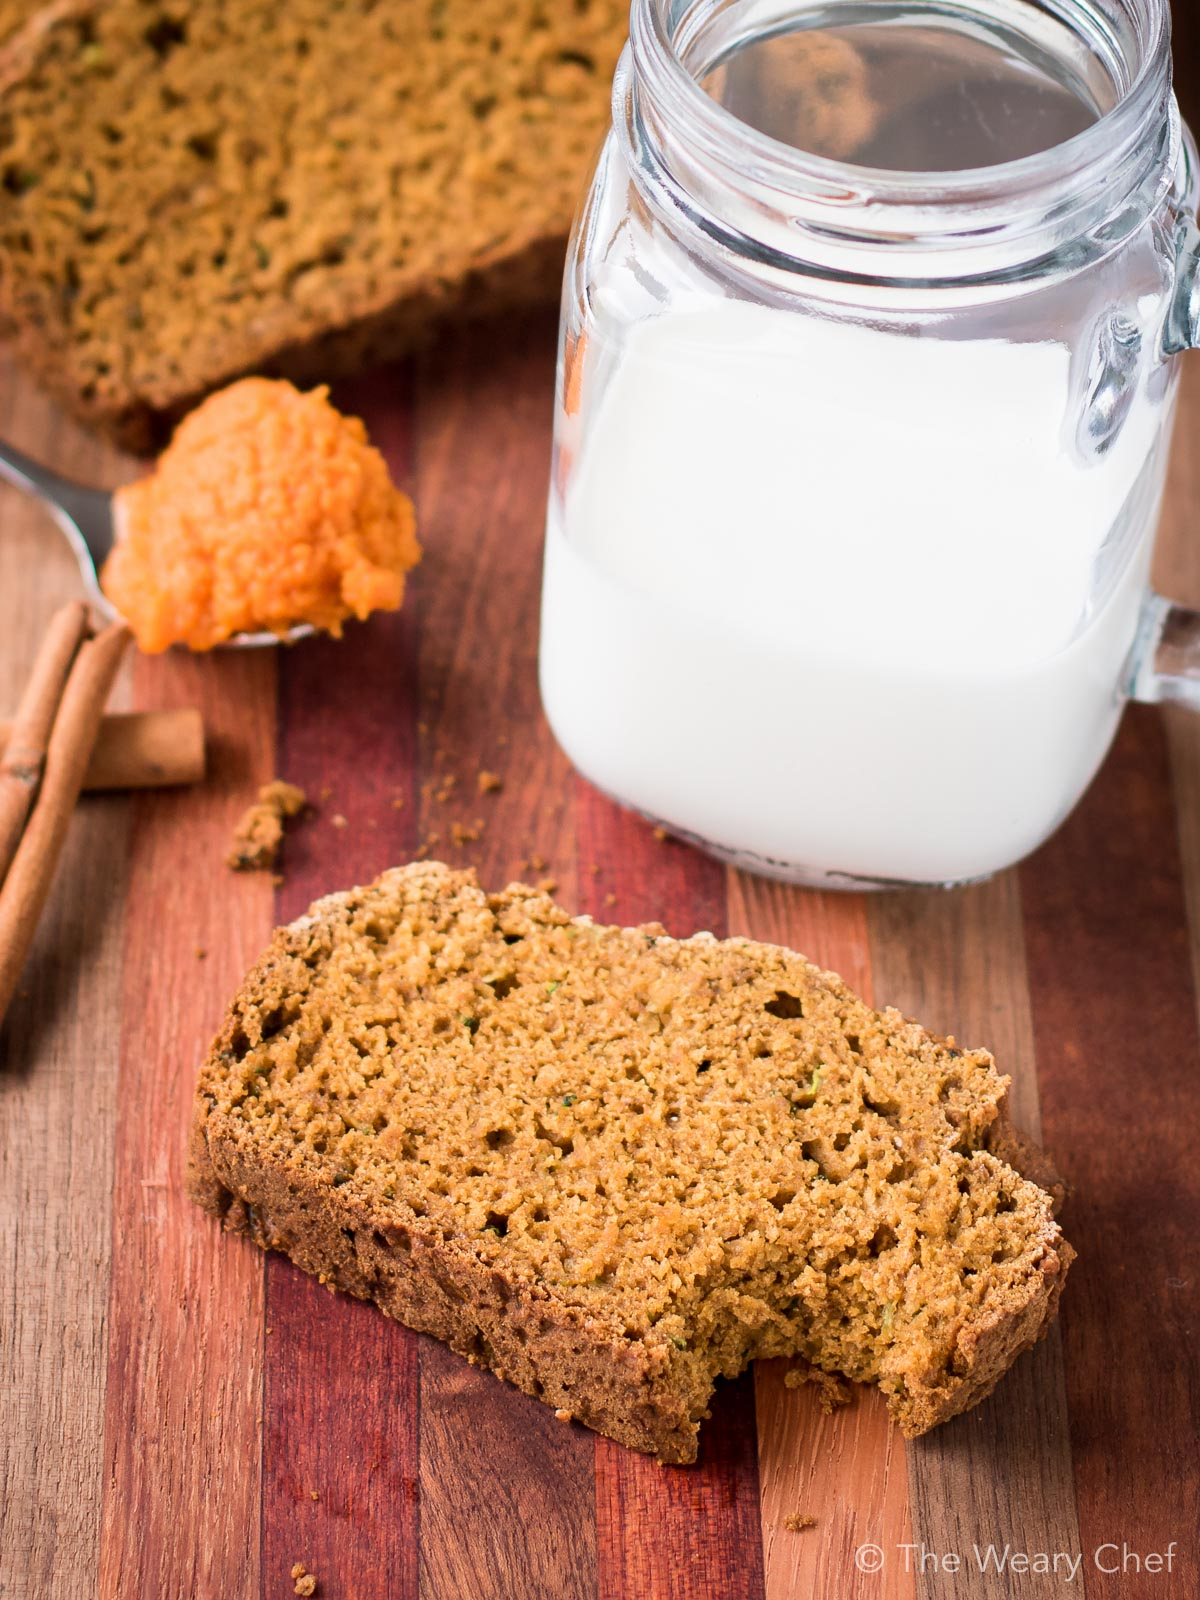 Breakfast, after school snack, or holiday gift - All are right for this pumpkin zucchini bread recipe!